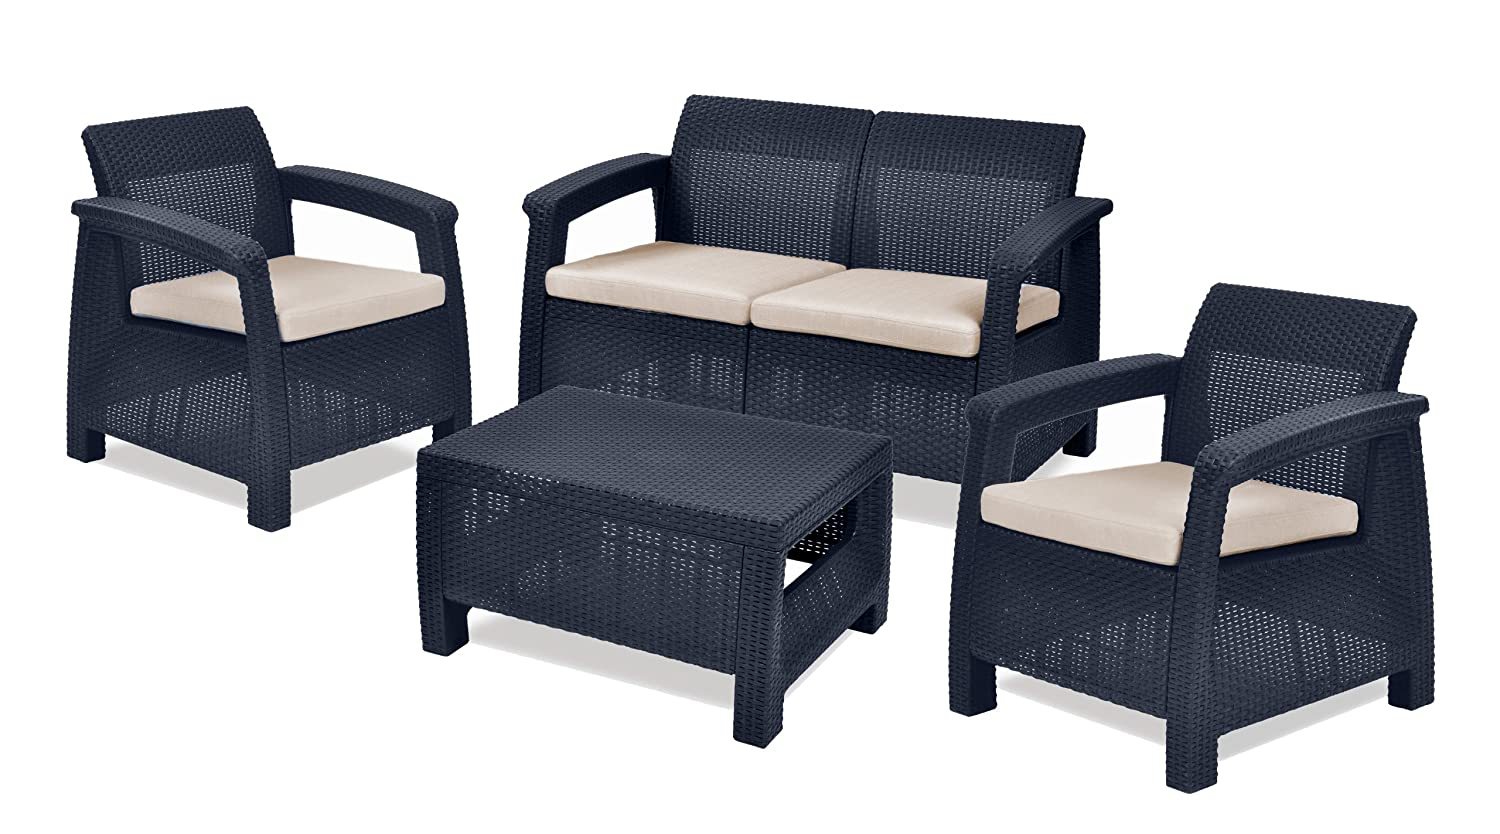 4 Pcs Garden Furniture Set Keter Corfu With Table Plastic Rattan Outdoor Patio Ebay